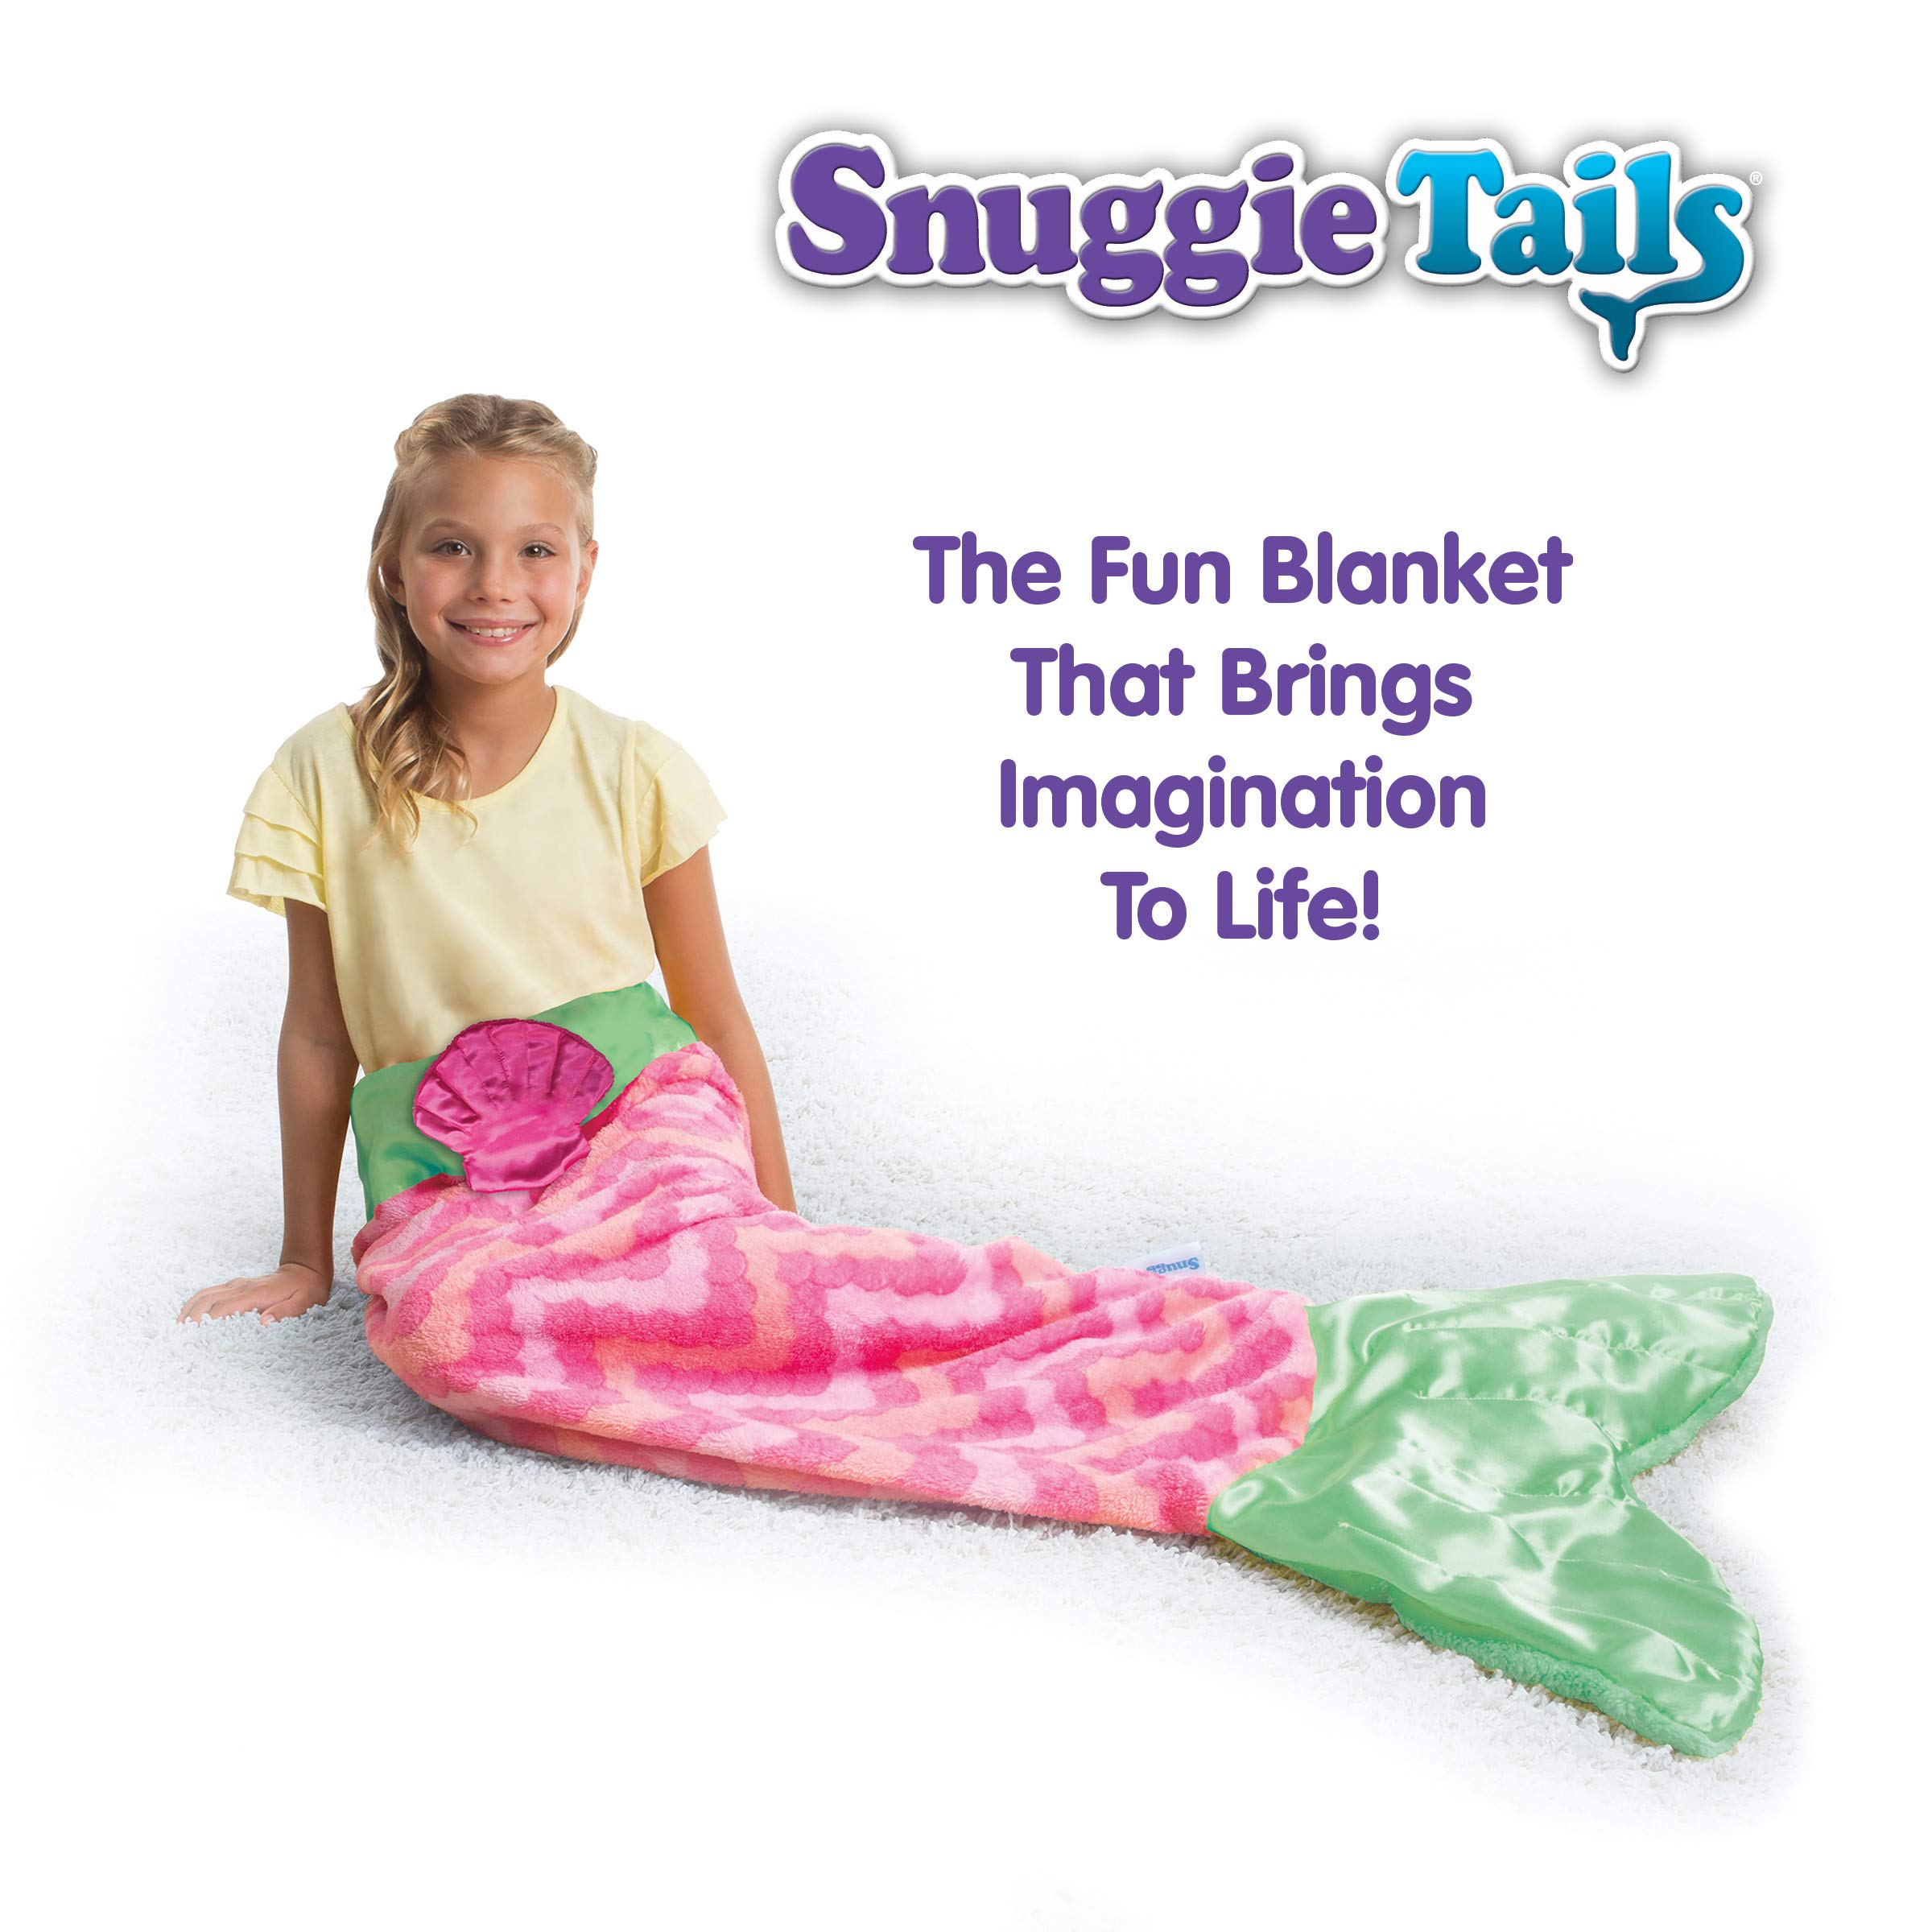 Snuggie Tails Allstar Innovations Mermaid Blanket for Kids (Pink), As Seen on TV by Snuggie Tails (Image #2)